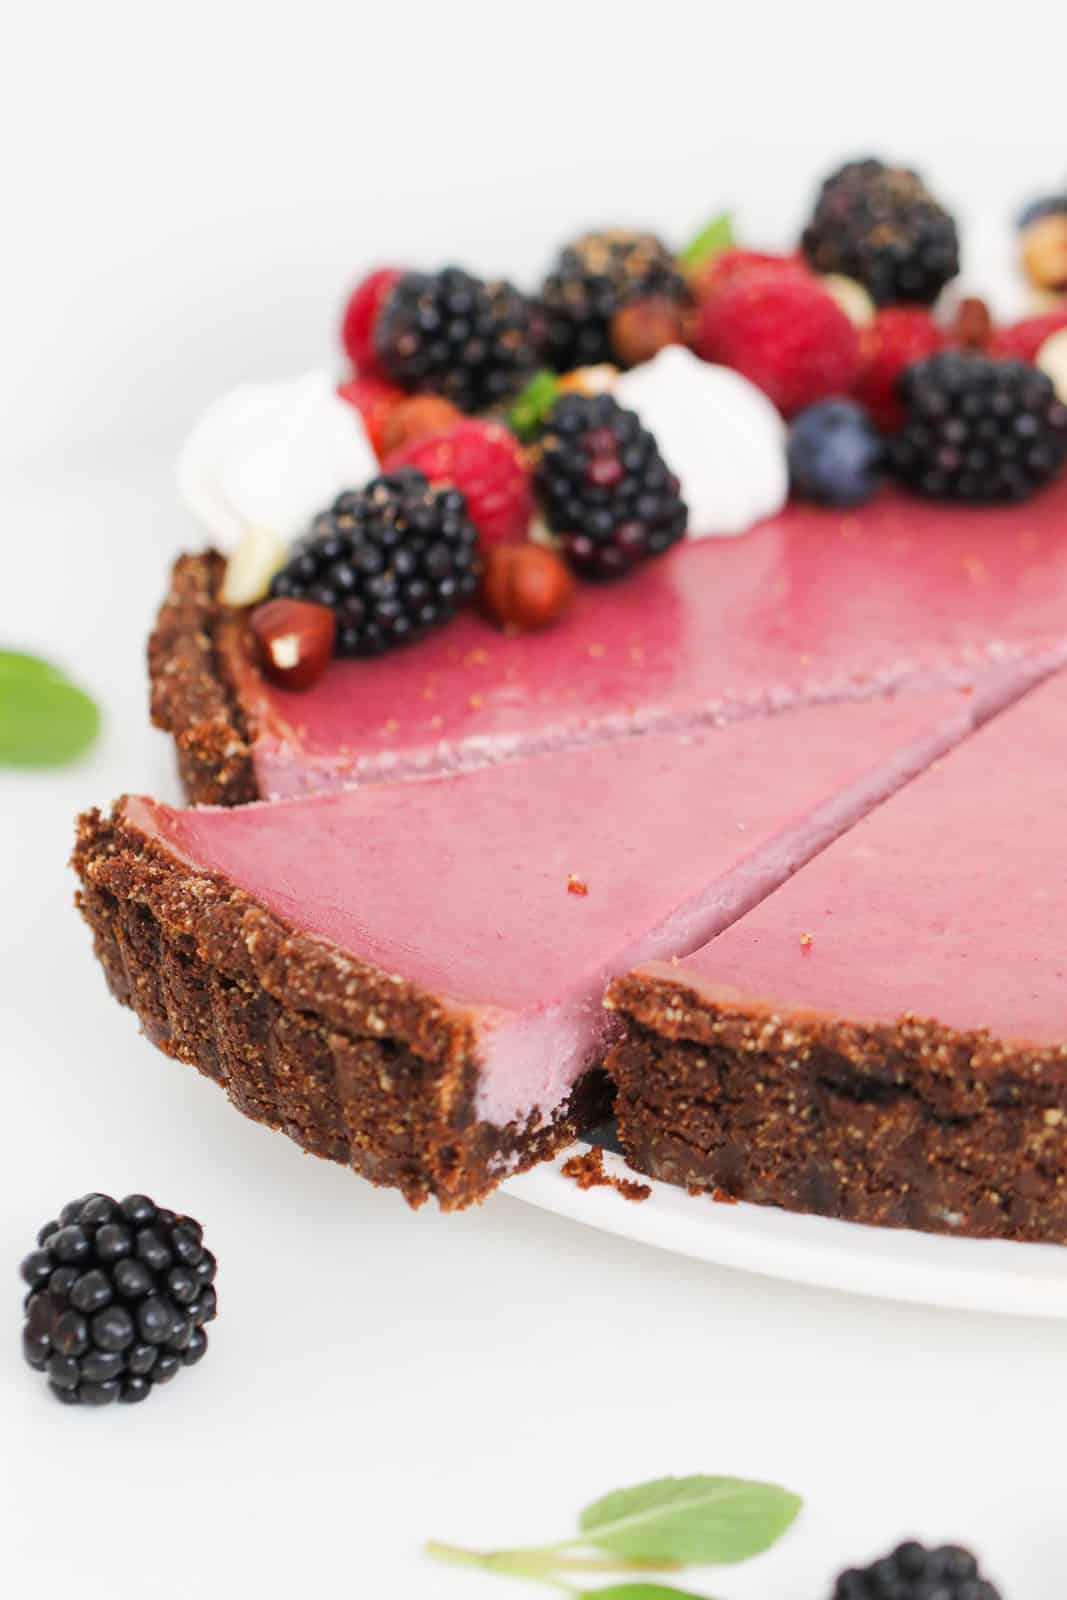 A slice of berry cheesecake being removed from a chocolate berry tart with fresh berries on top.